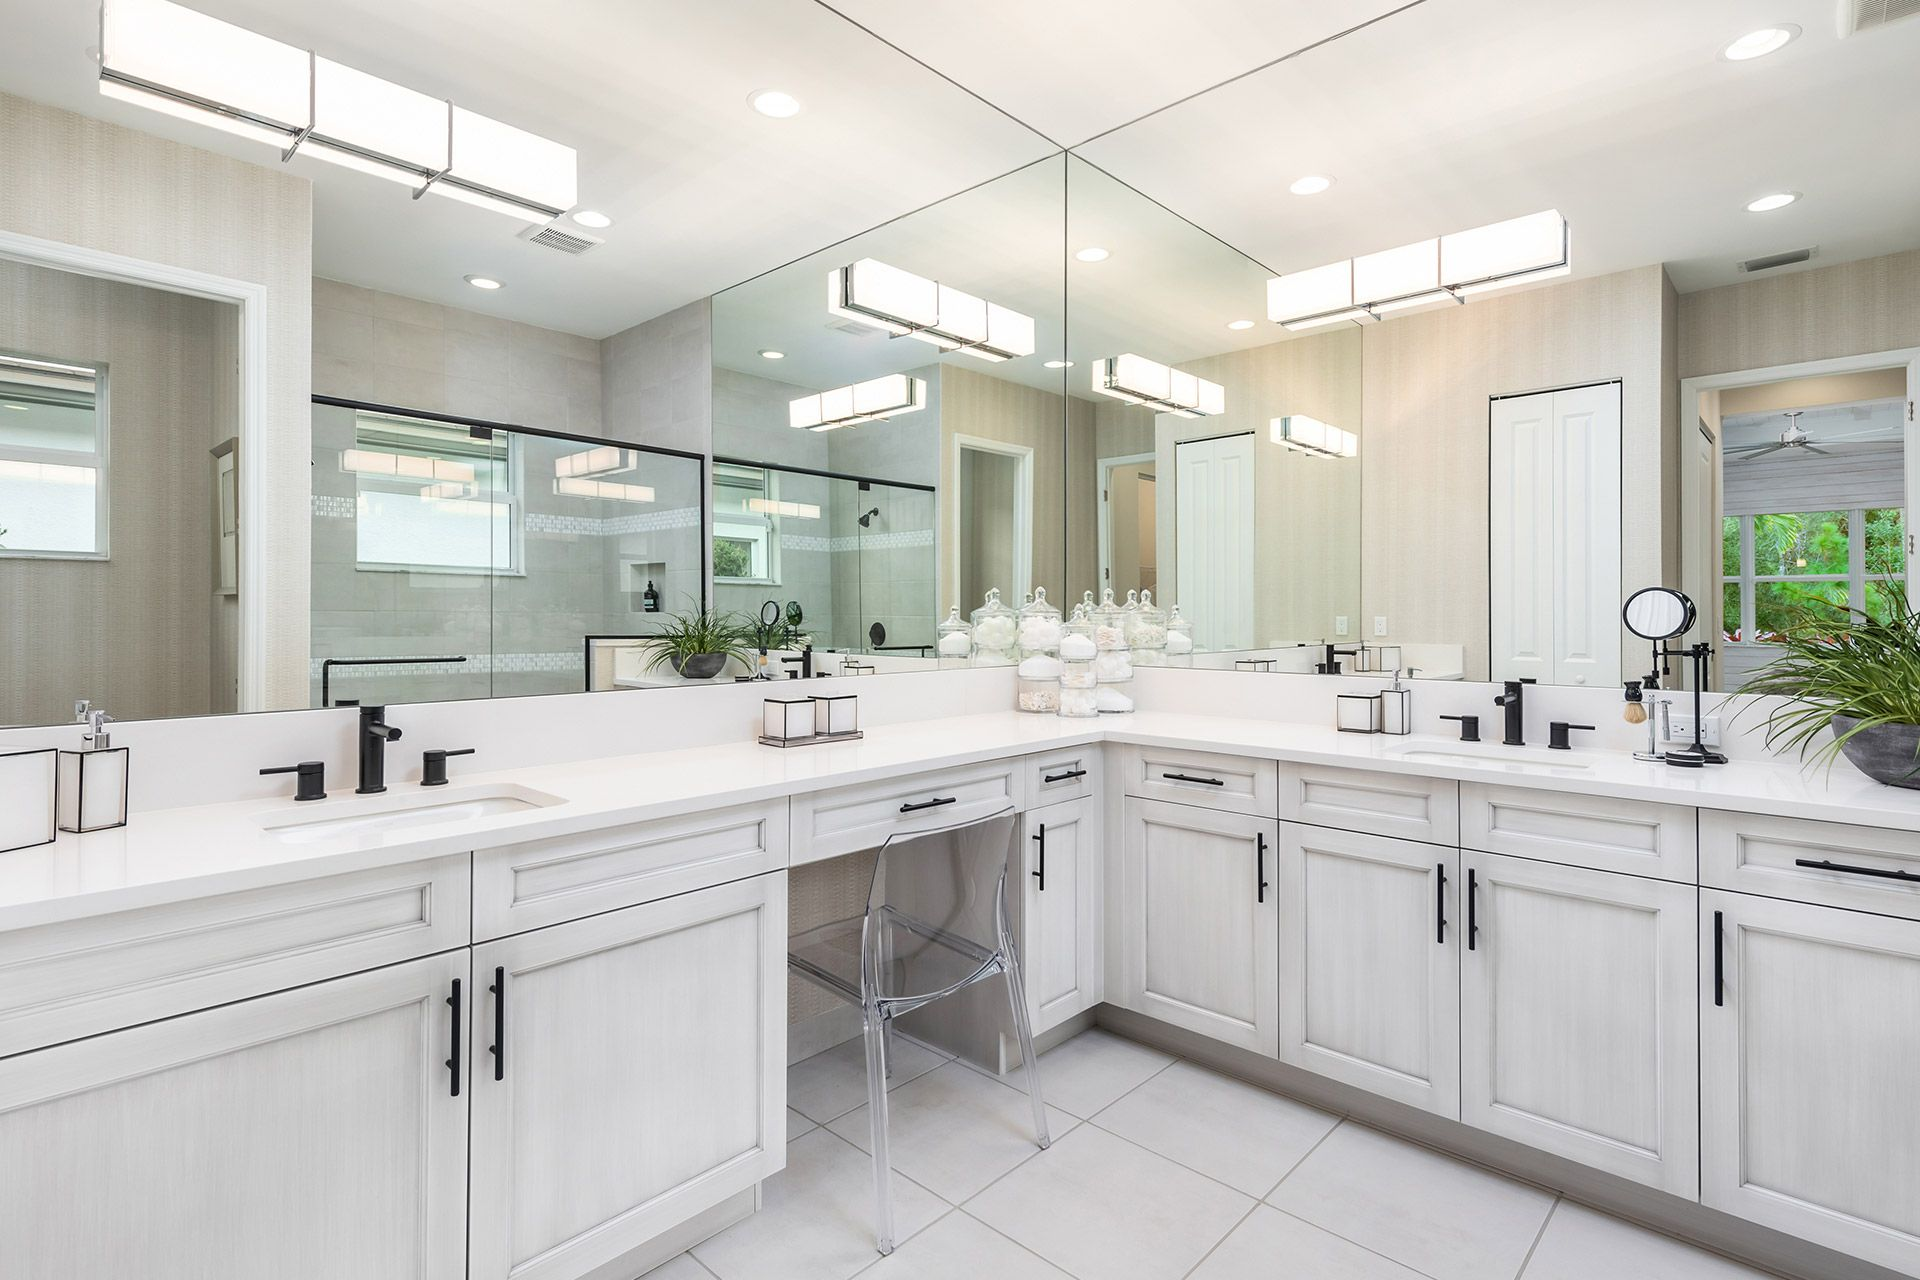 Bathroom featured in the Nautilus By GL Homes in Naples, FL